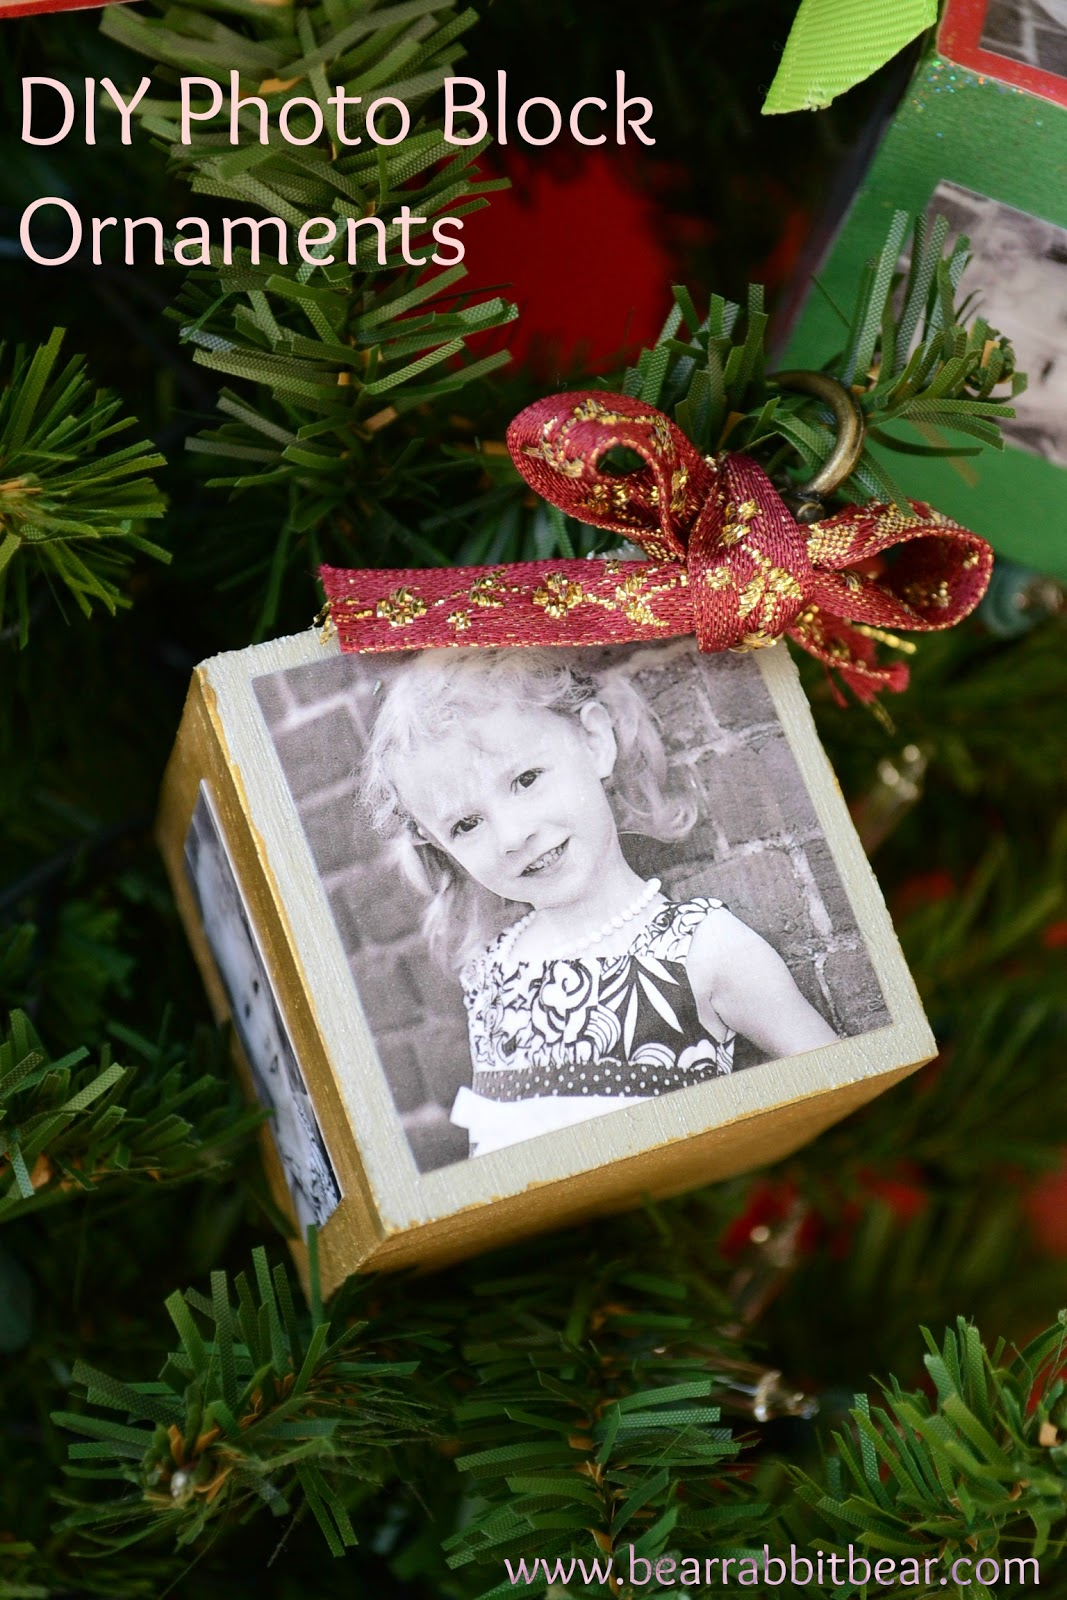 DIY Photo Block Ornaments with Mod Podge and Plaid Crafts